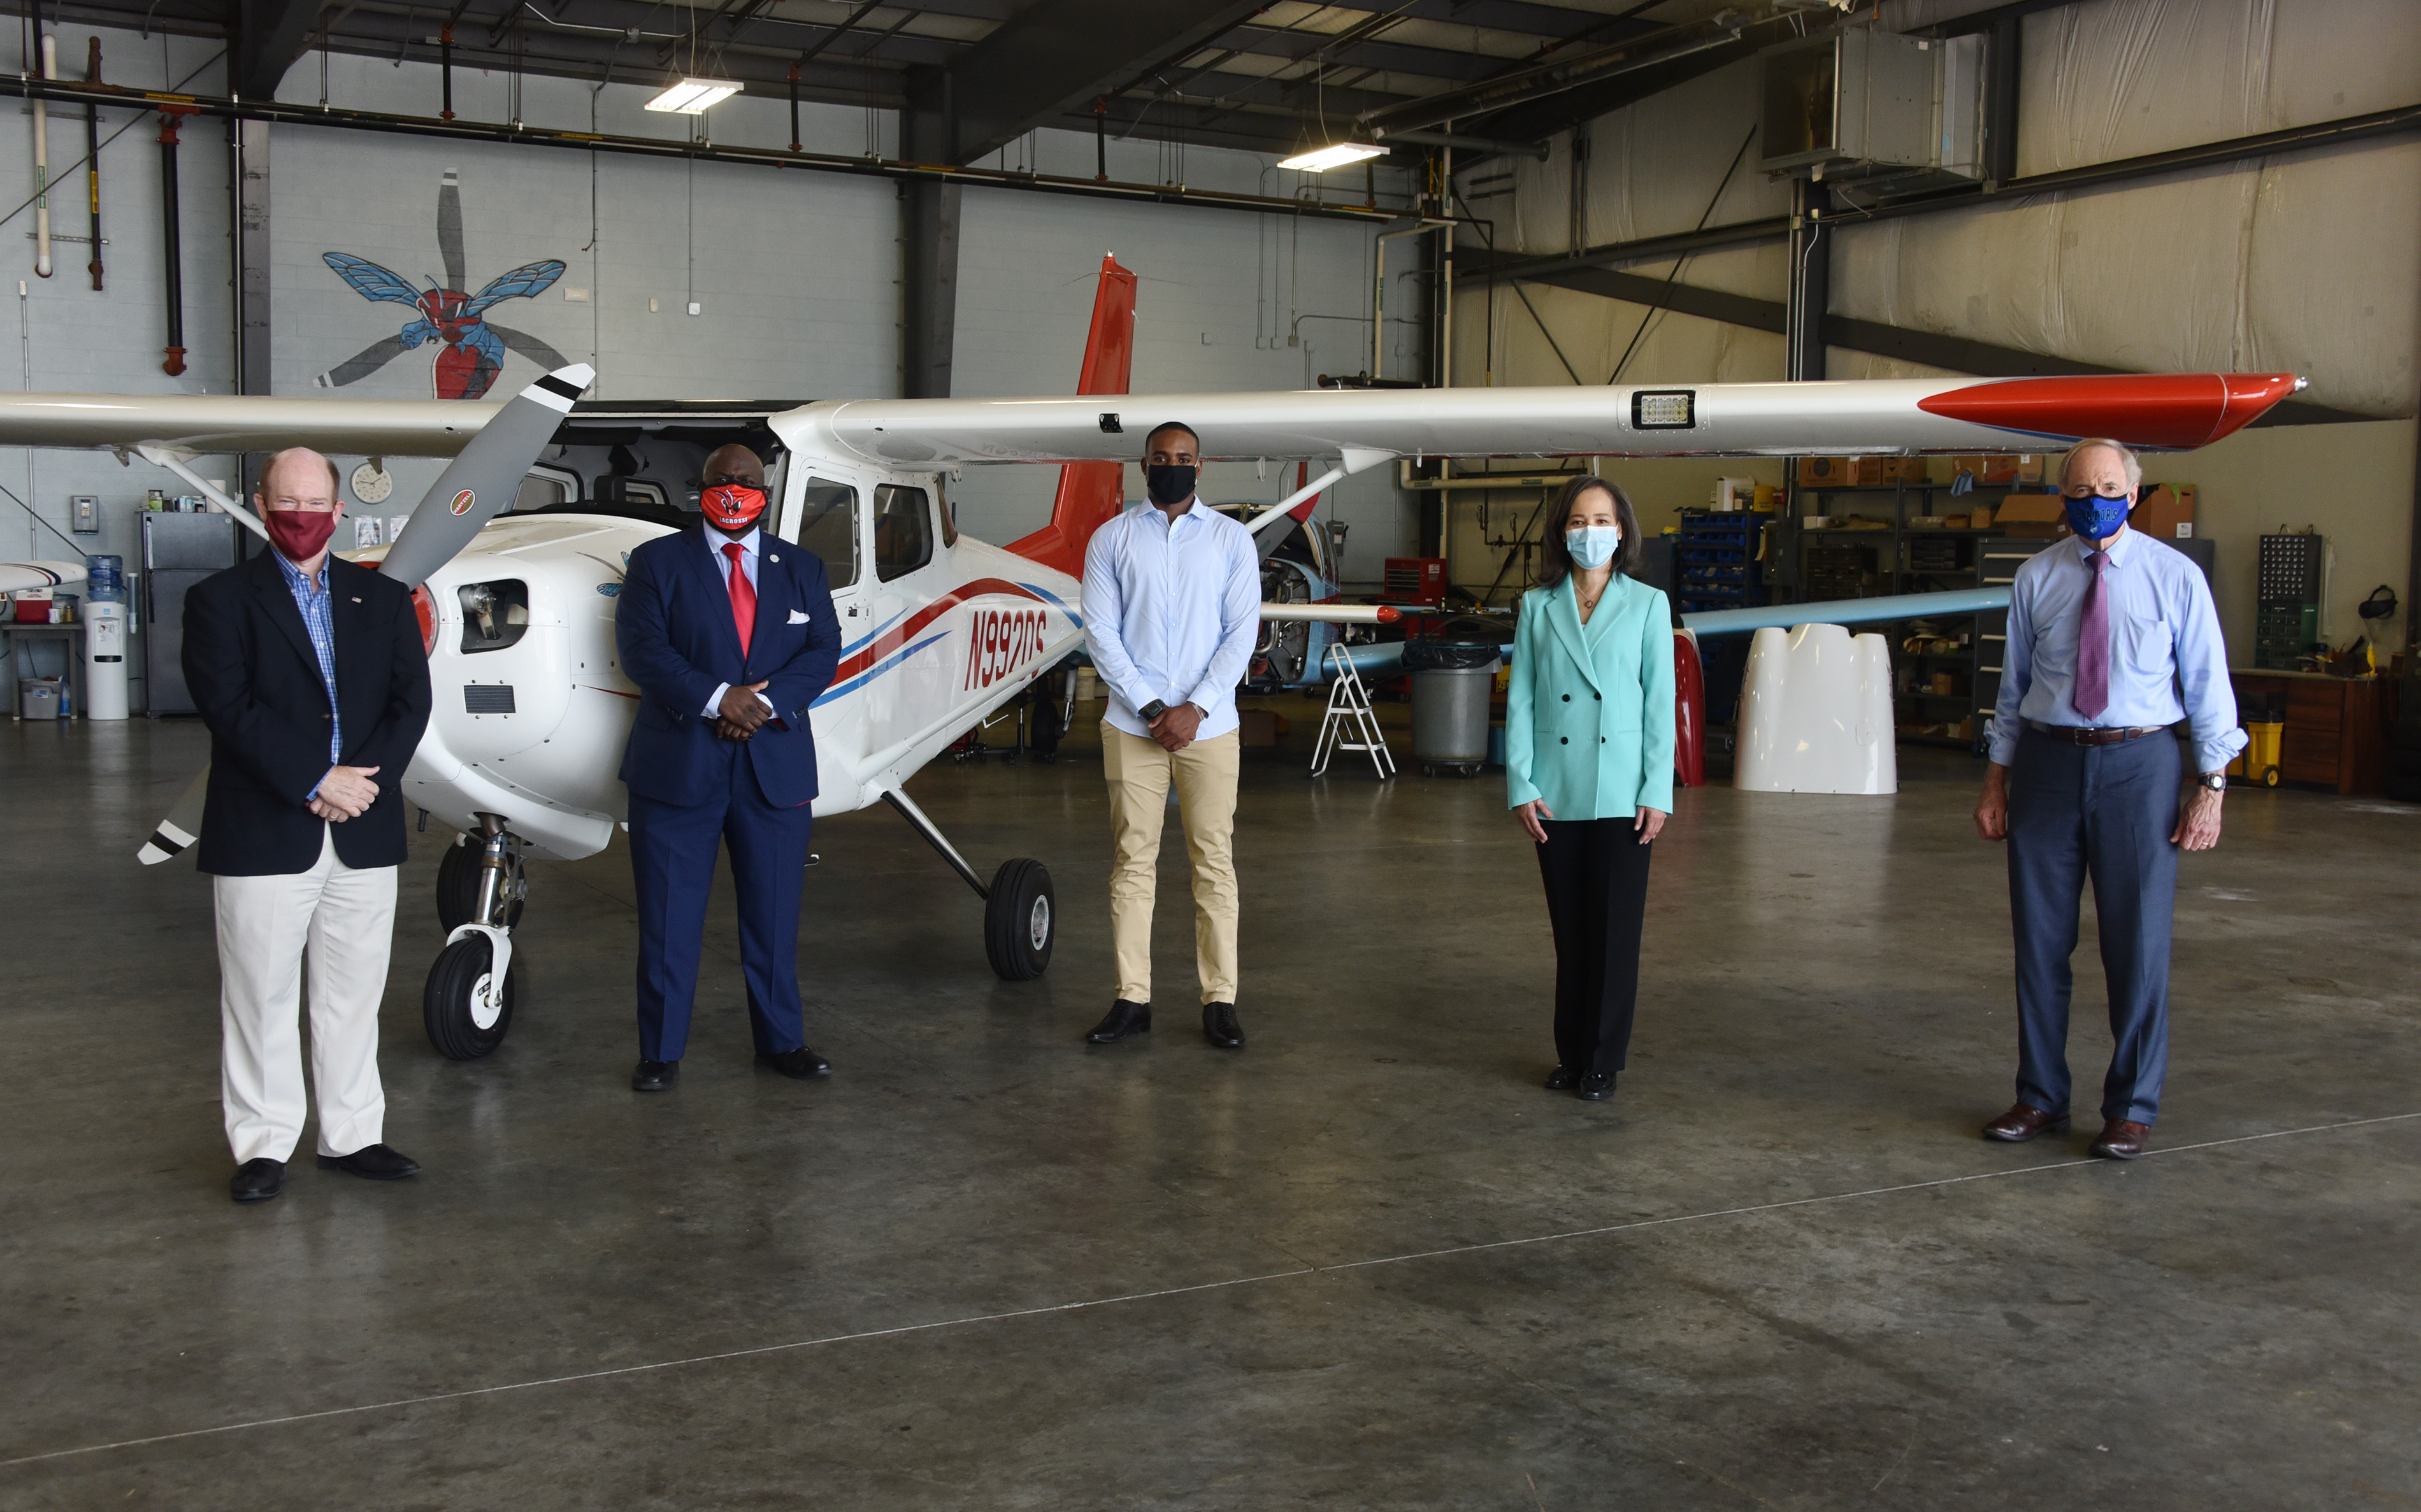 (L-r) U.S. Chris Coons, University President Tony Allen, Aviation freshman Tajay Kelly, U.S. Rep. Lisa Blunt Rochester, and U.S. Sen. Tom Carper pose with adherence to social distancing, after an event in the Daniel Coons Hanger at the Delaware Airpark where the talked about The Flight Act and how it would benefit Del State's Aviation Program.